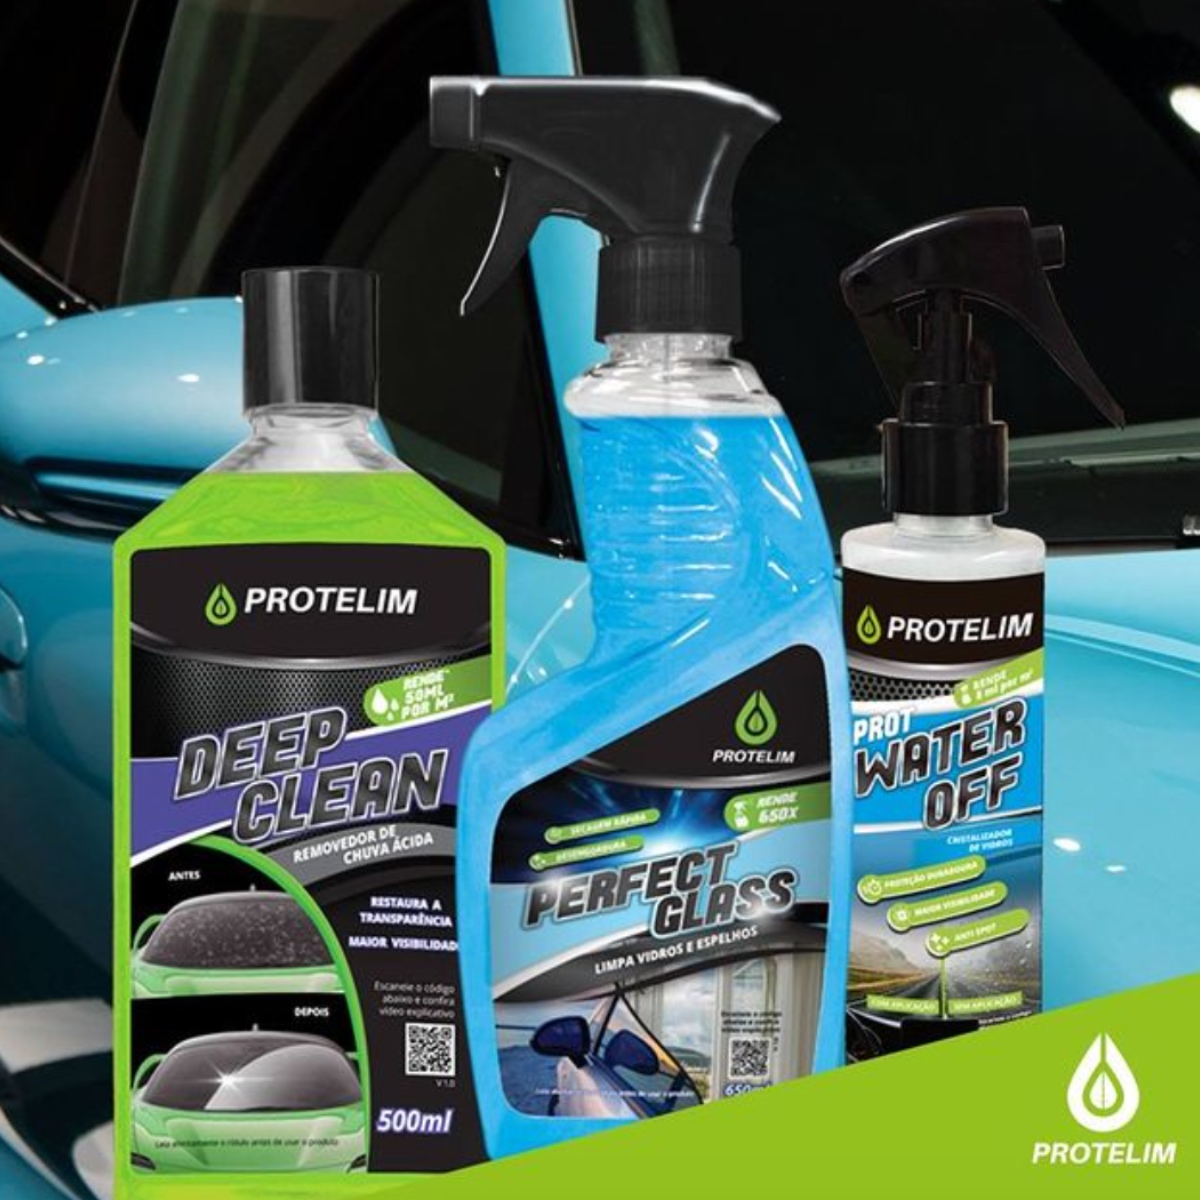 Kit Limpa e Cristaliza Deep Clean, Perfect Glass e Water Off